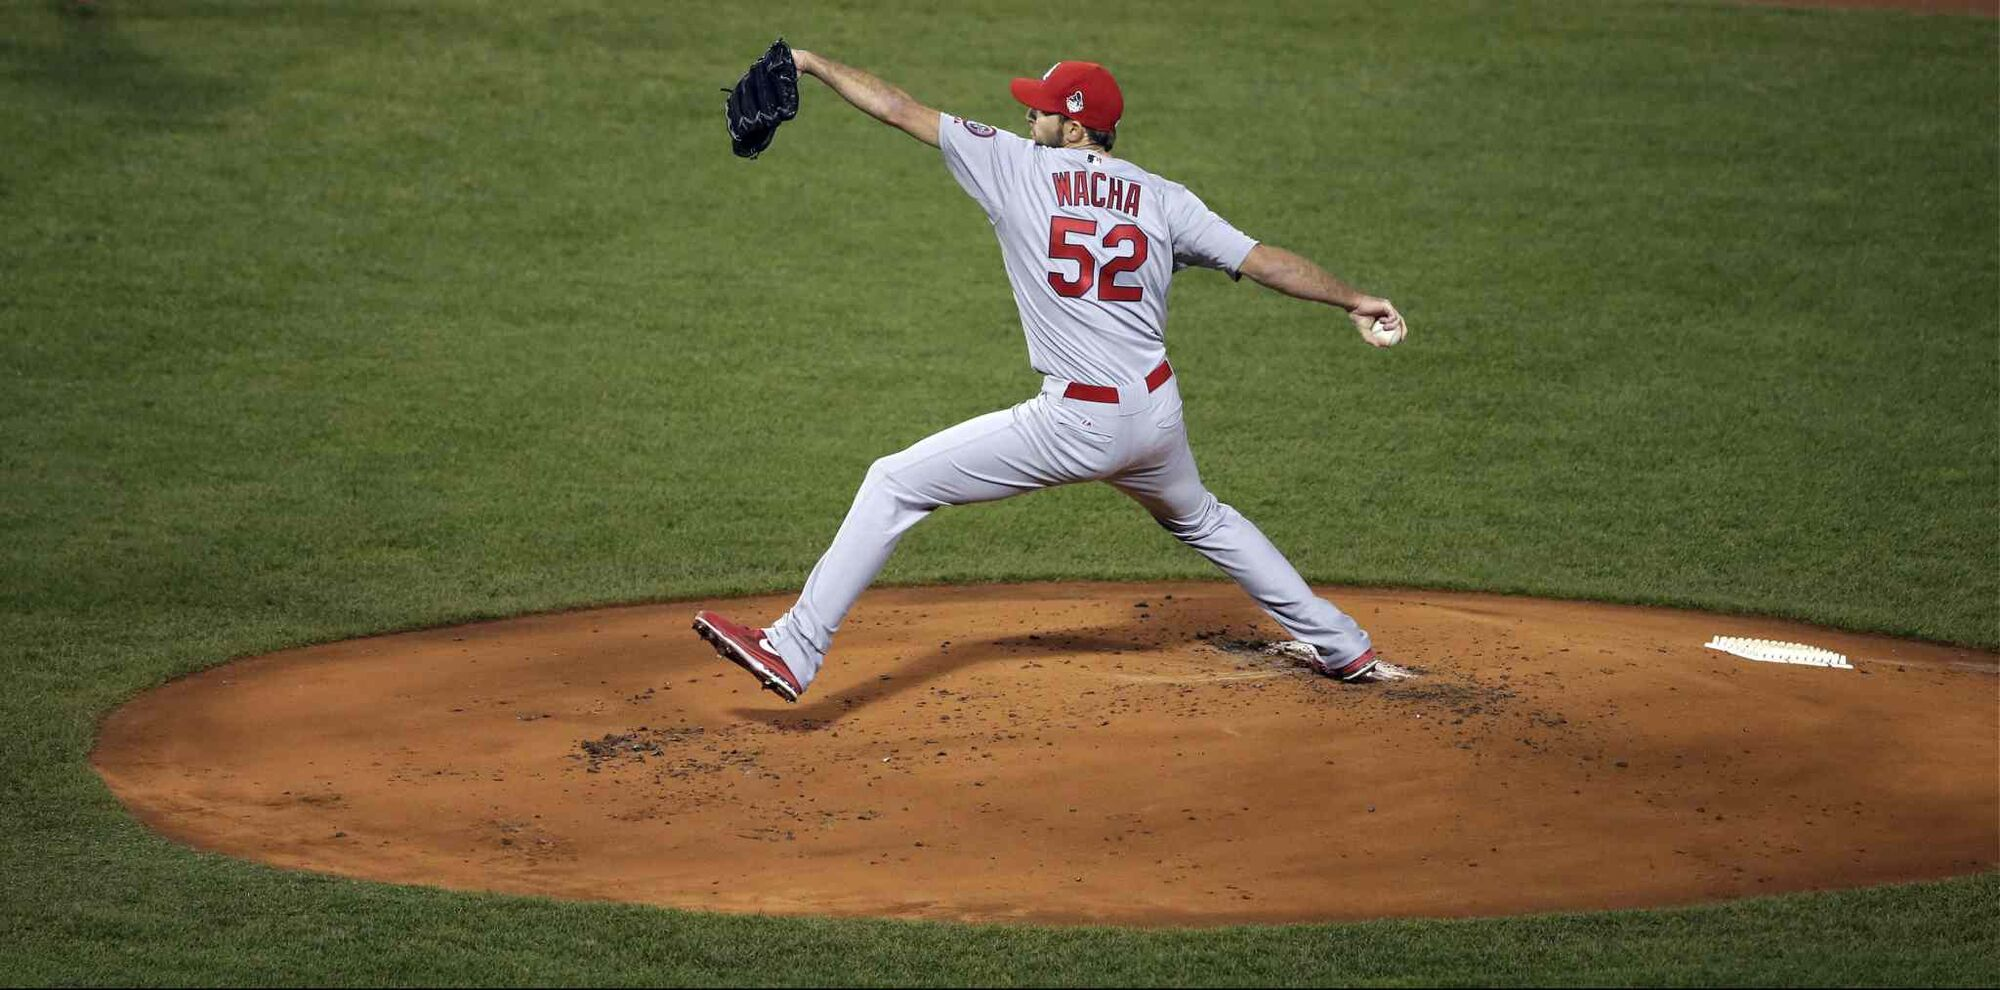 St. Louis Cardinals starting pitcher Michael Wacha throws during the first inning. (Chris Carlson / The Associated Press)